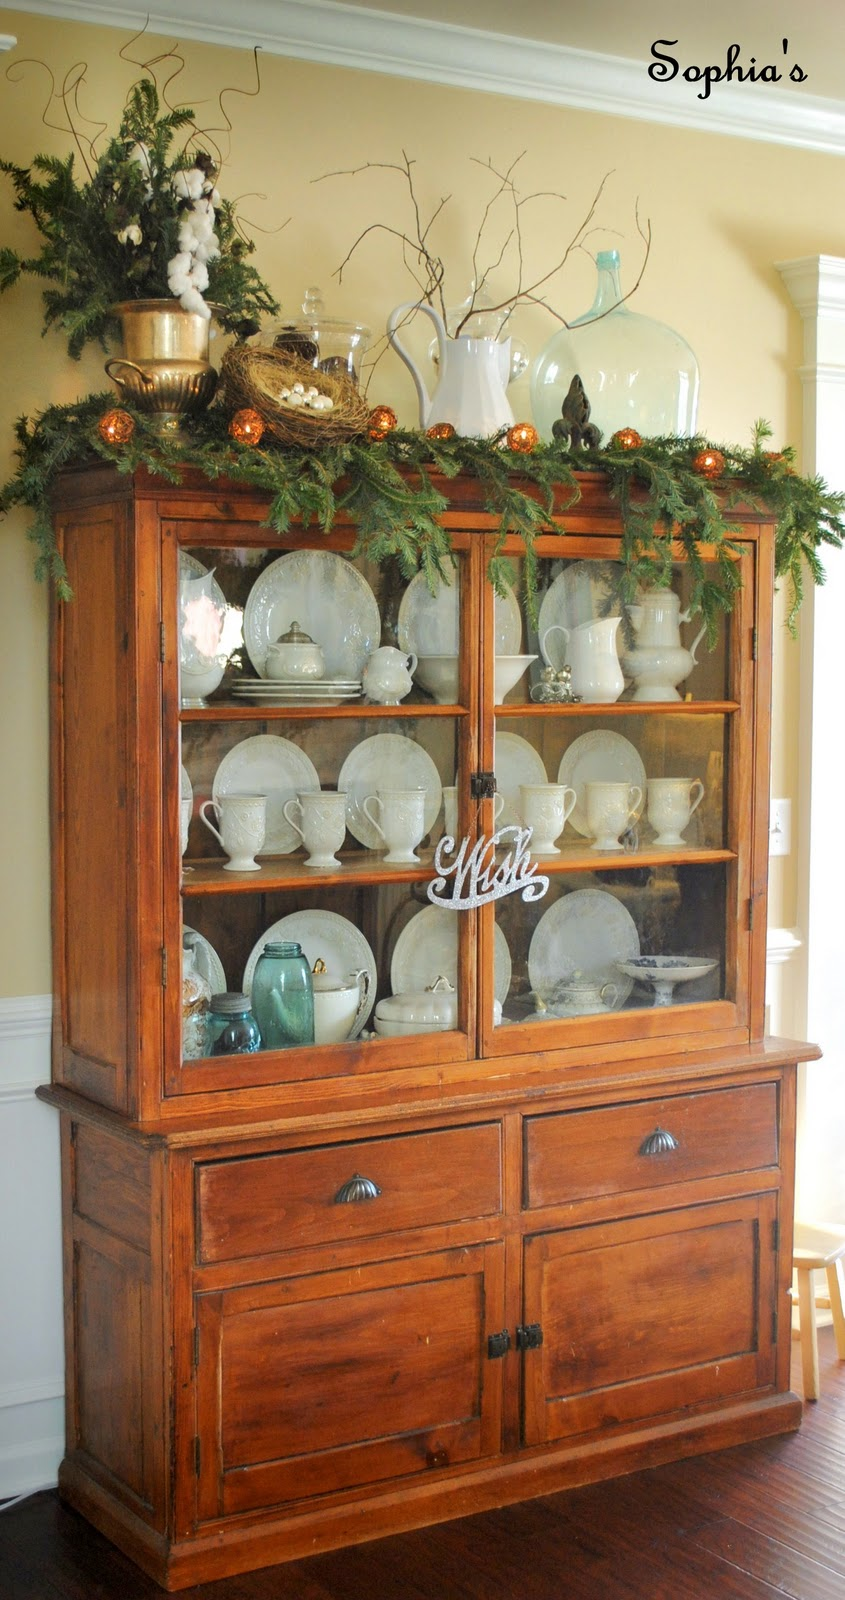 Sophia 39 s christmas cabinet vignette for Hutch decor